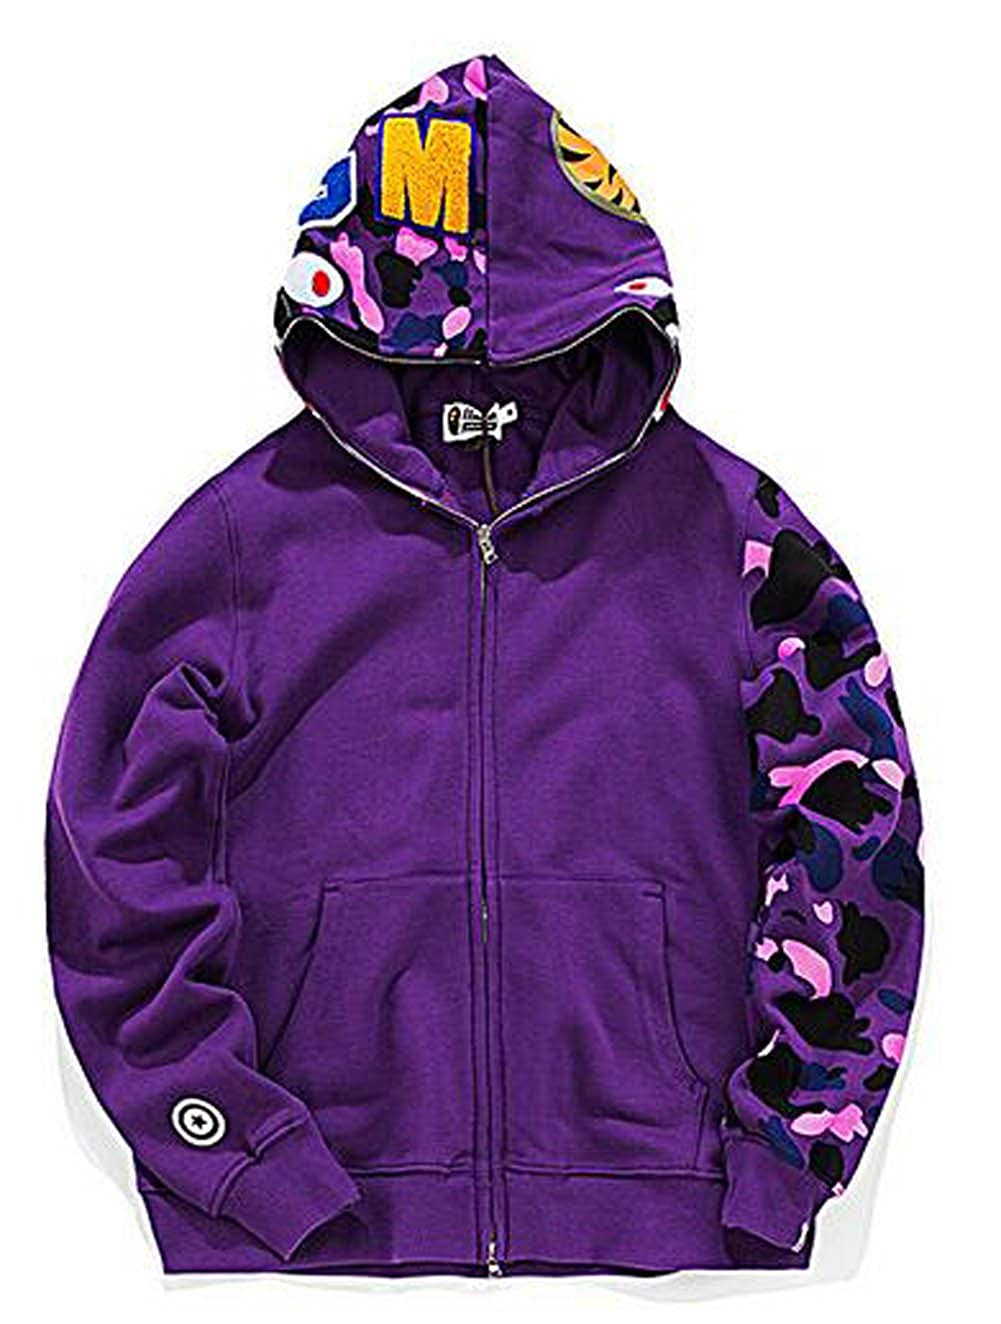 ad8287df0 Amazon.com: Scarlett Mens Hoodies Ape Bape Sweatshirt Fashion Outdoor  Tracksuit Casual Hip-Hop Funny Coat: Clothing